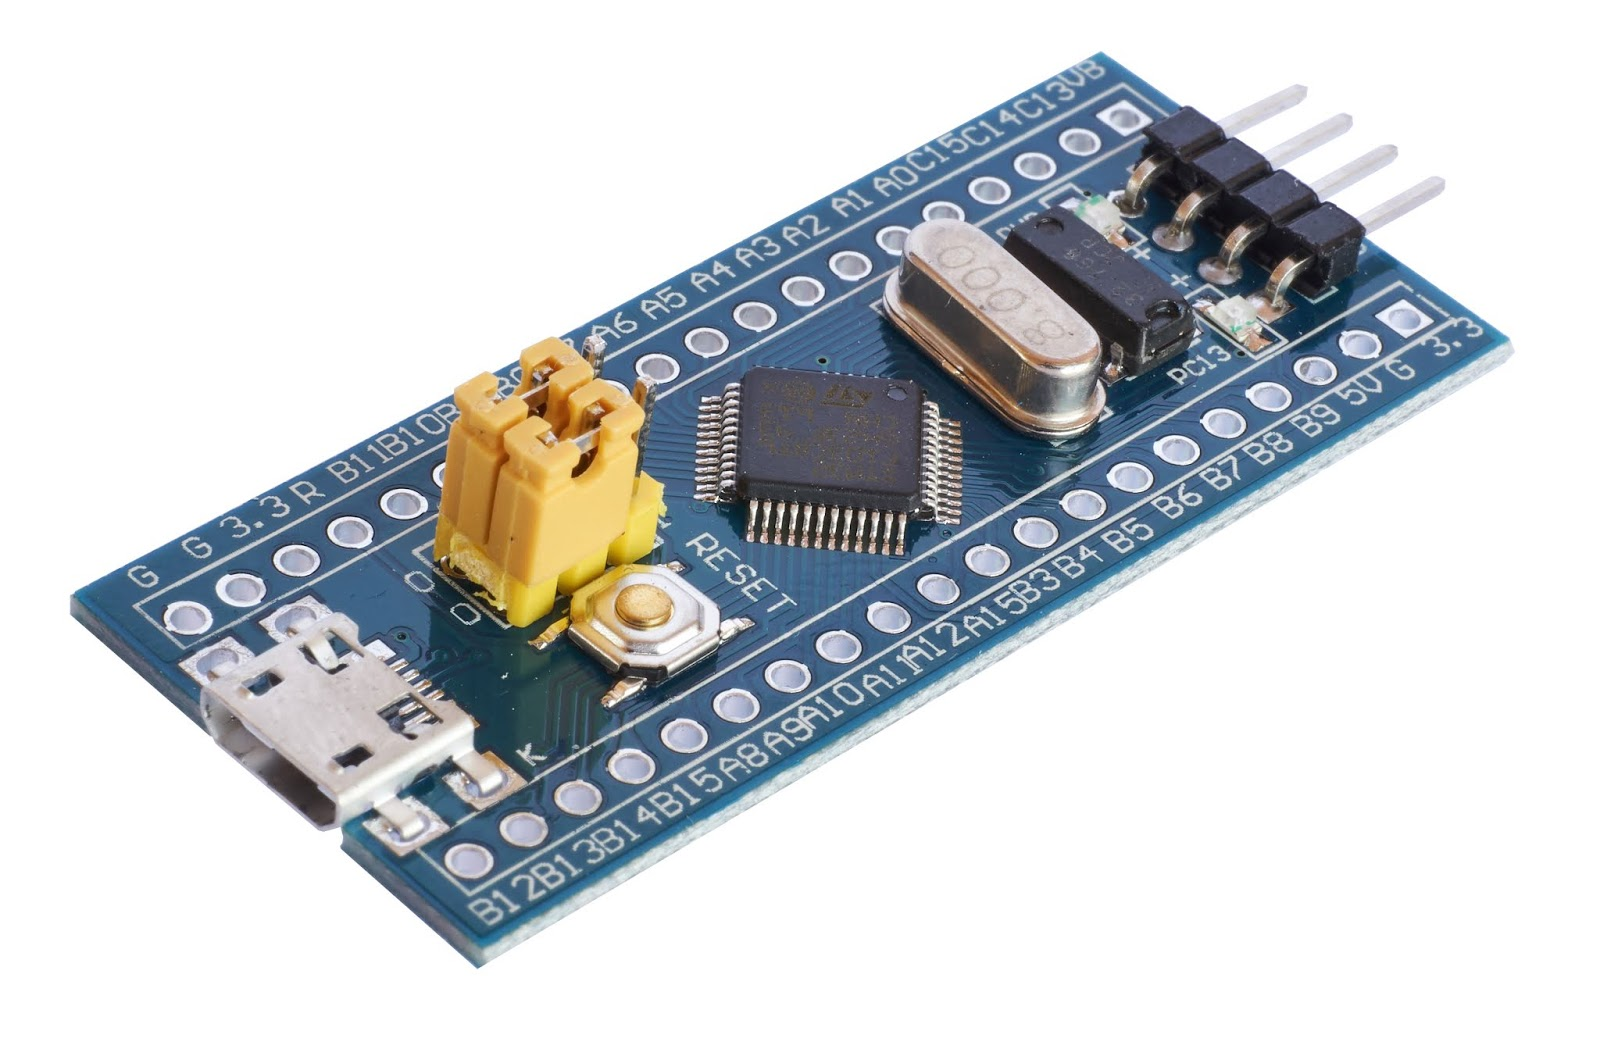 Getting Started With STM32 BluePill Part - Introduction